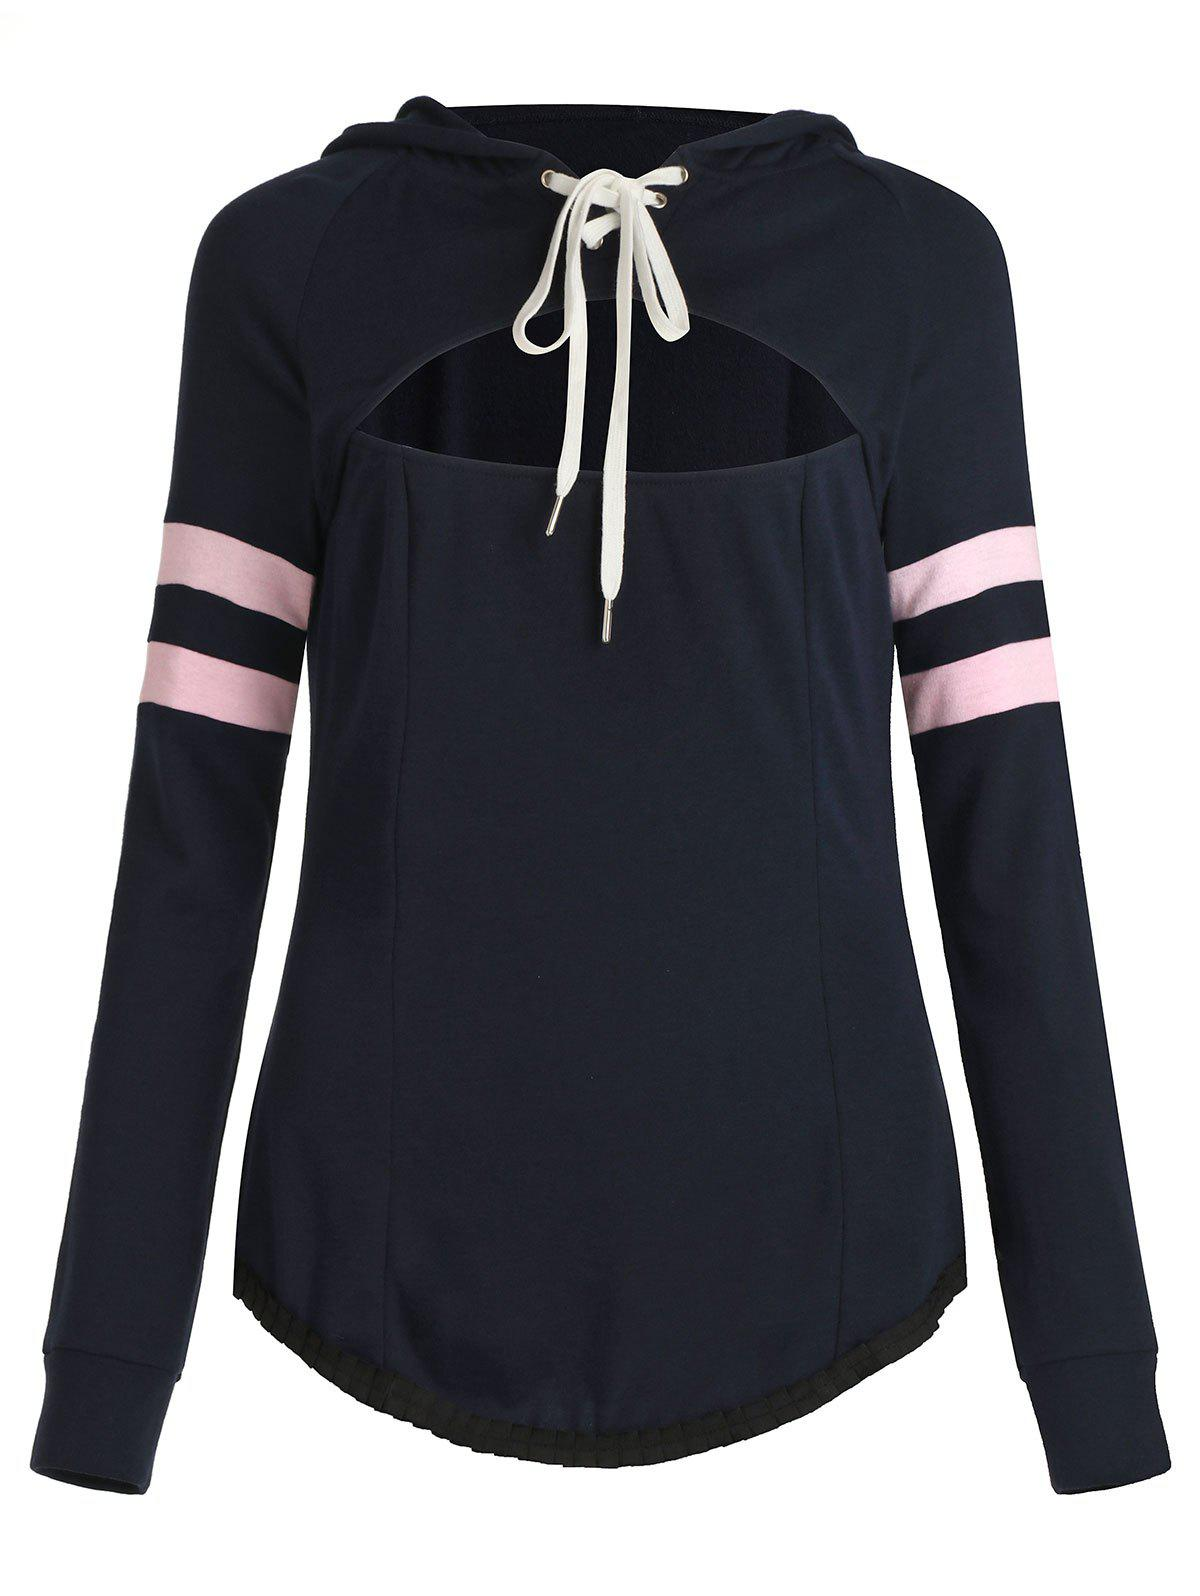 Shop Cut Out Lace Up Stripe Sleeves Hooded Sweatshirt